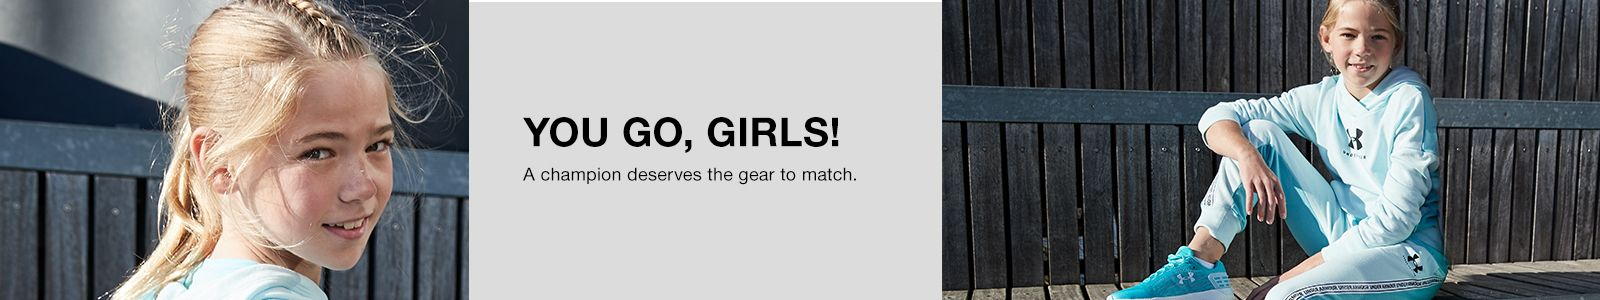 You Go, Girls! A champion deserves the gear to match